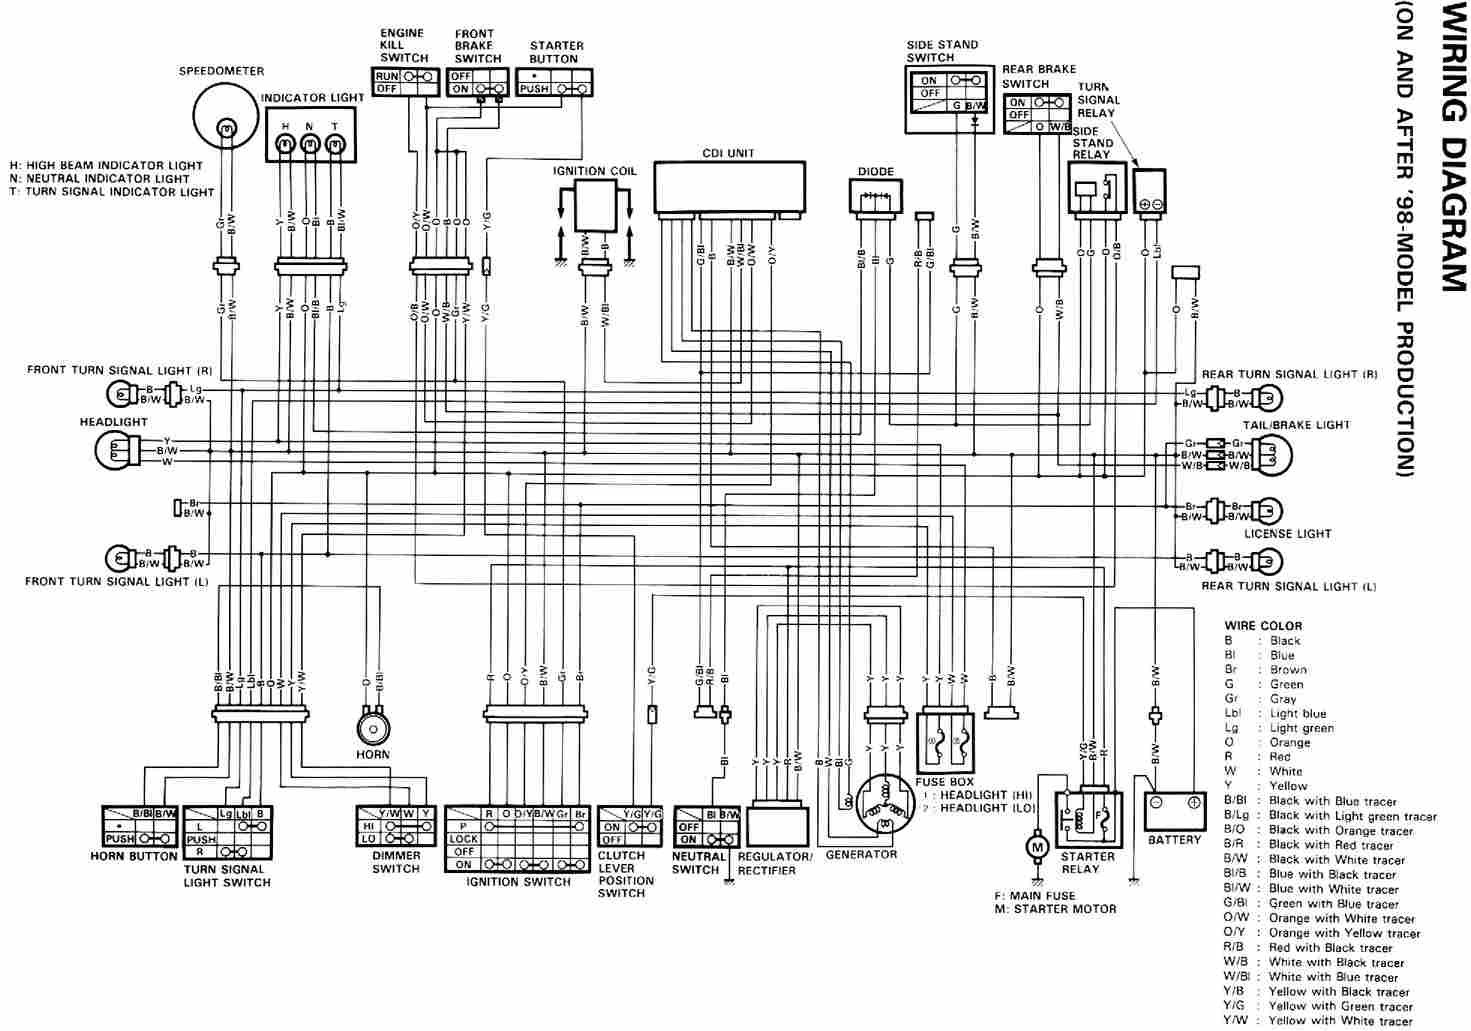 2008 Suzuki Gsxr 1000 Wiring Diagram Simple Detailed Ducati 848 400 Ltz Circuit Schematic